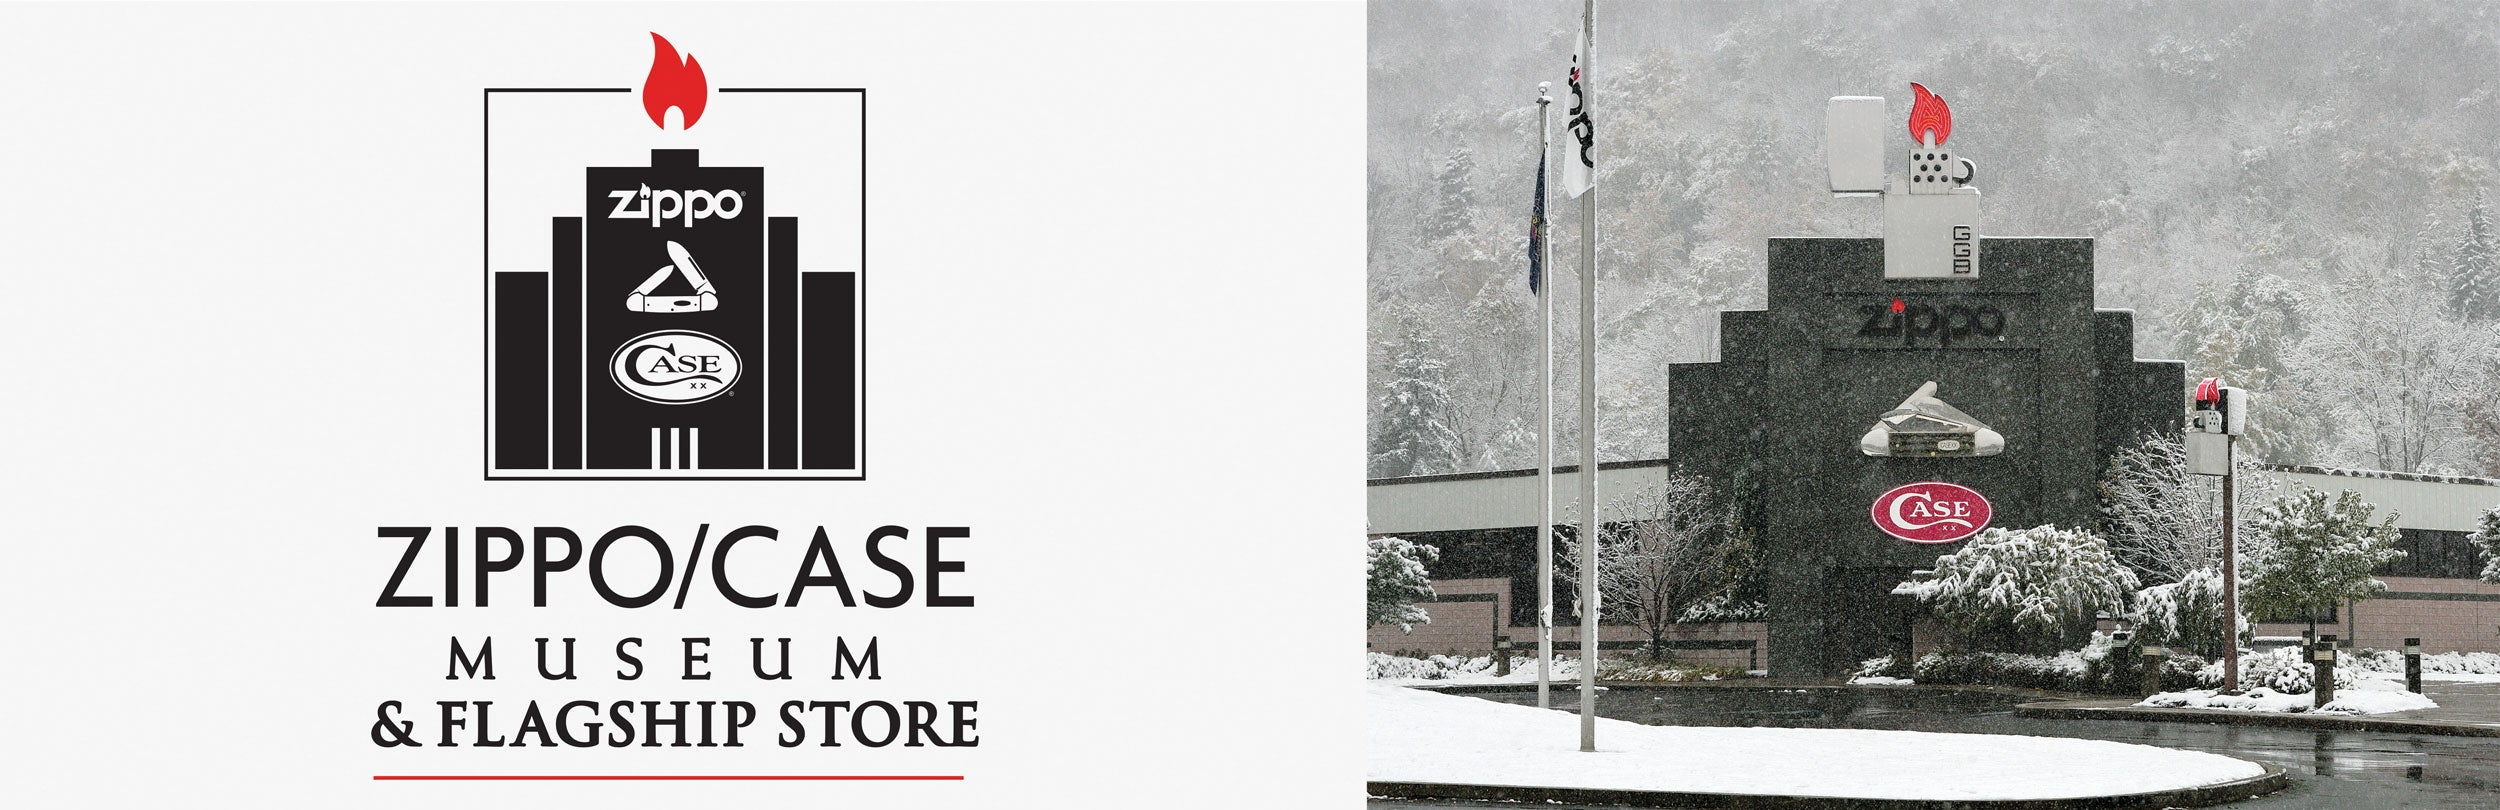 ZippoCase Museum logo and winter photo